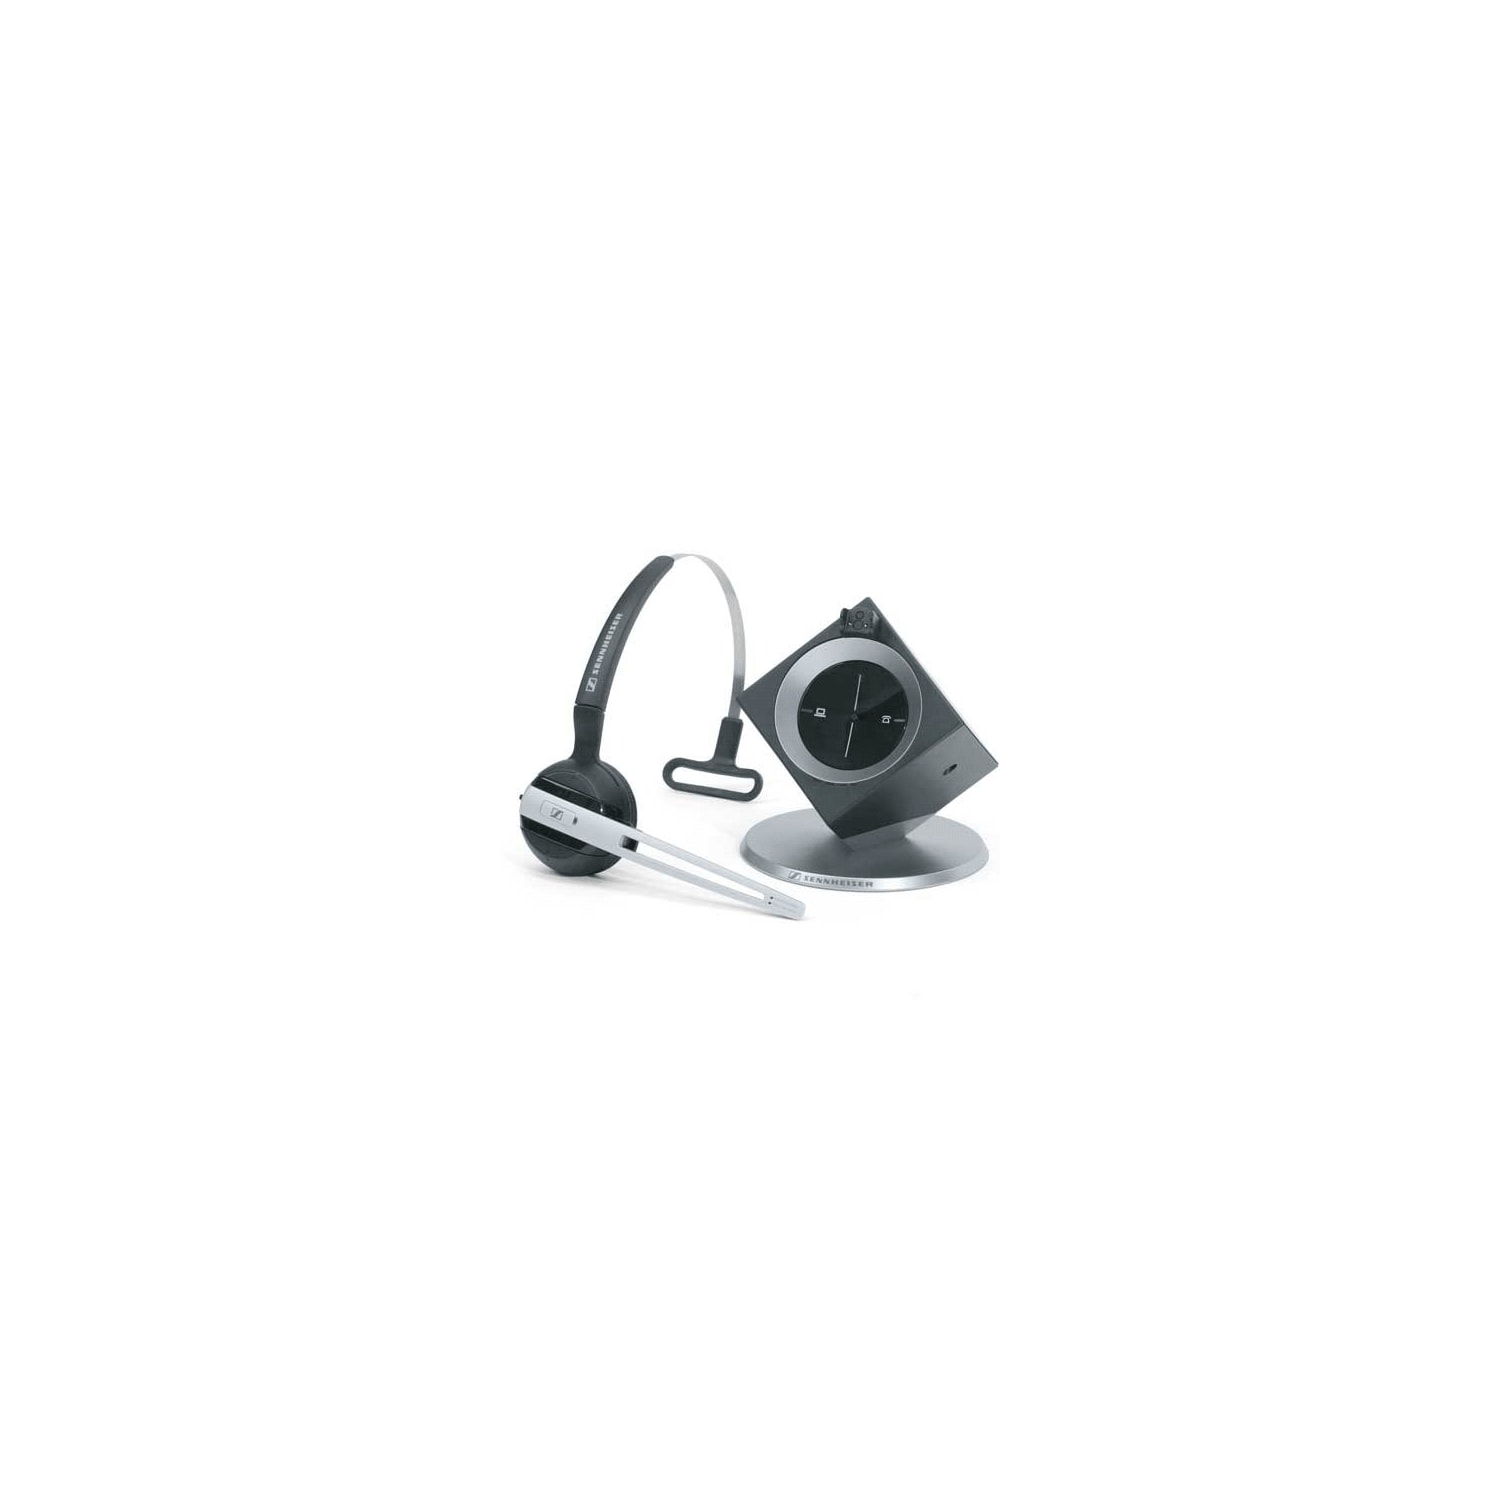 cad620e6744 Sennheiser DW Office - Dect Wireless Office Headset With Base Station, For  Desk Phone And